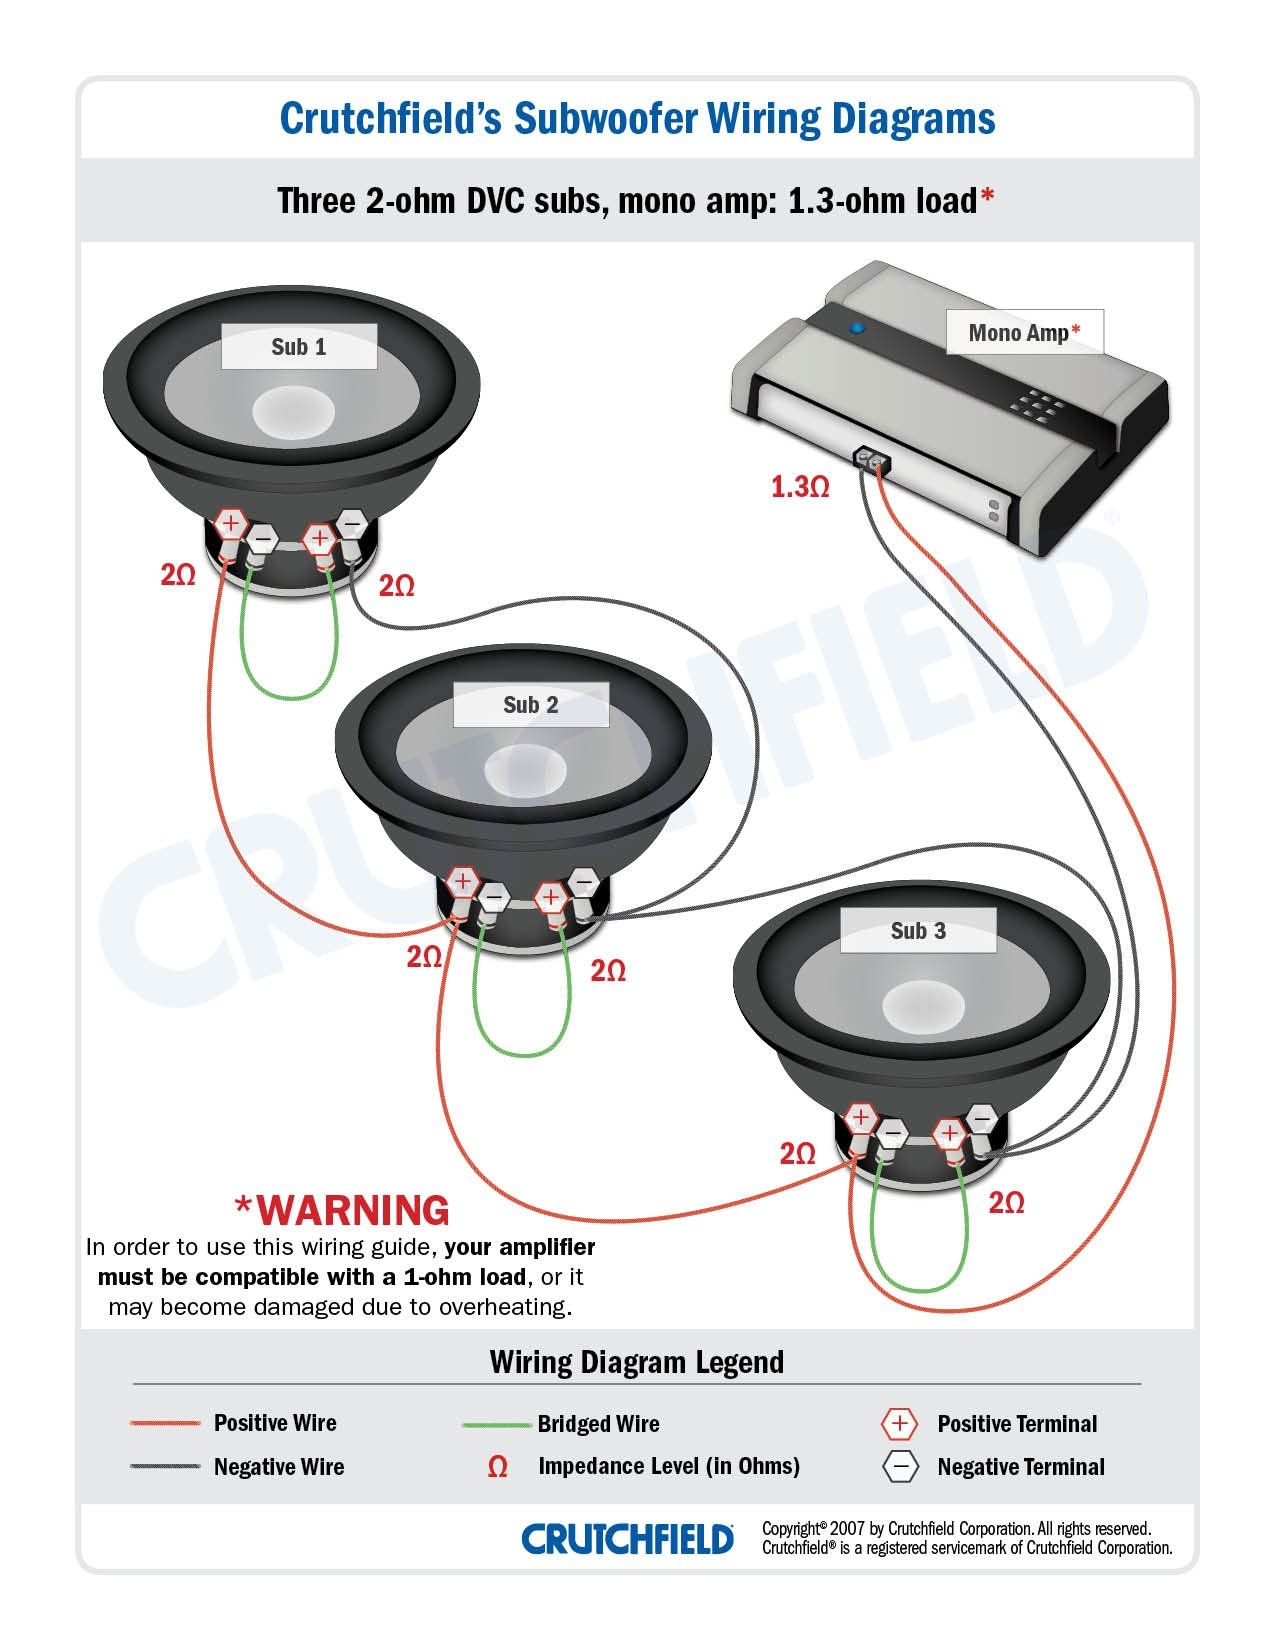 Boss Subwoofer Wiring Diagram 2 Subwoofers 1 Amp Wiring Schematic